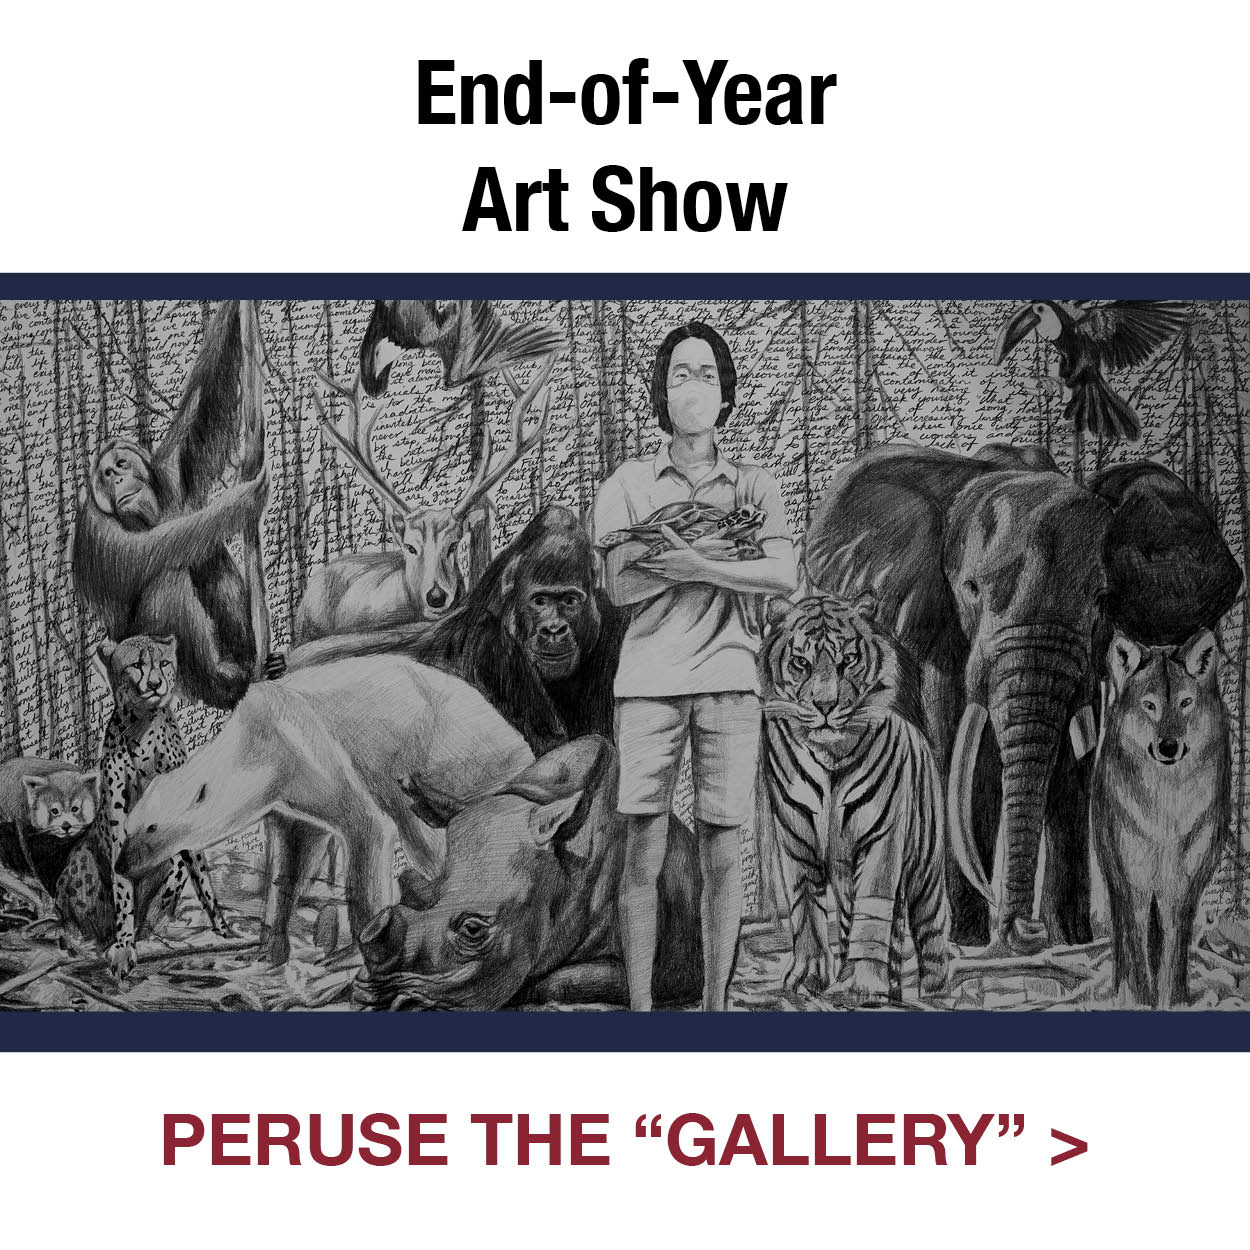 End-of-Year Art Show